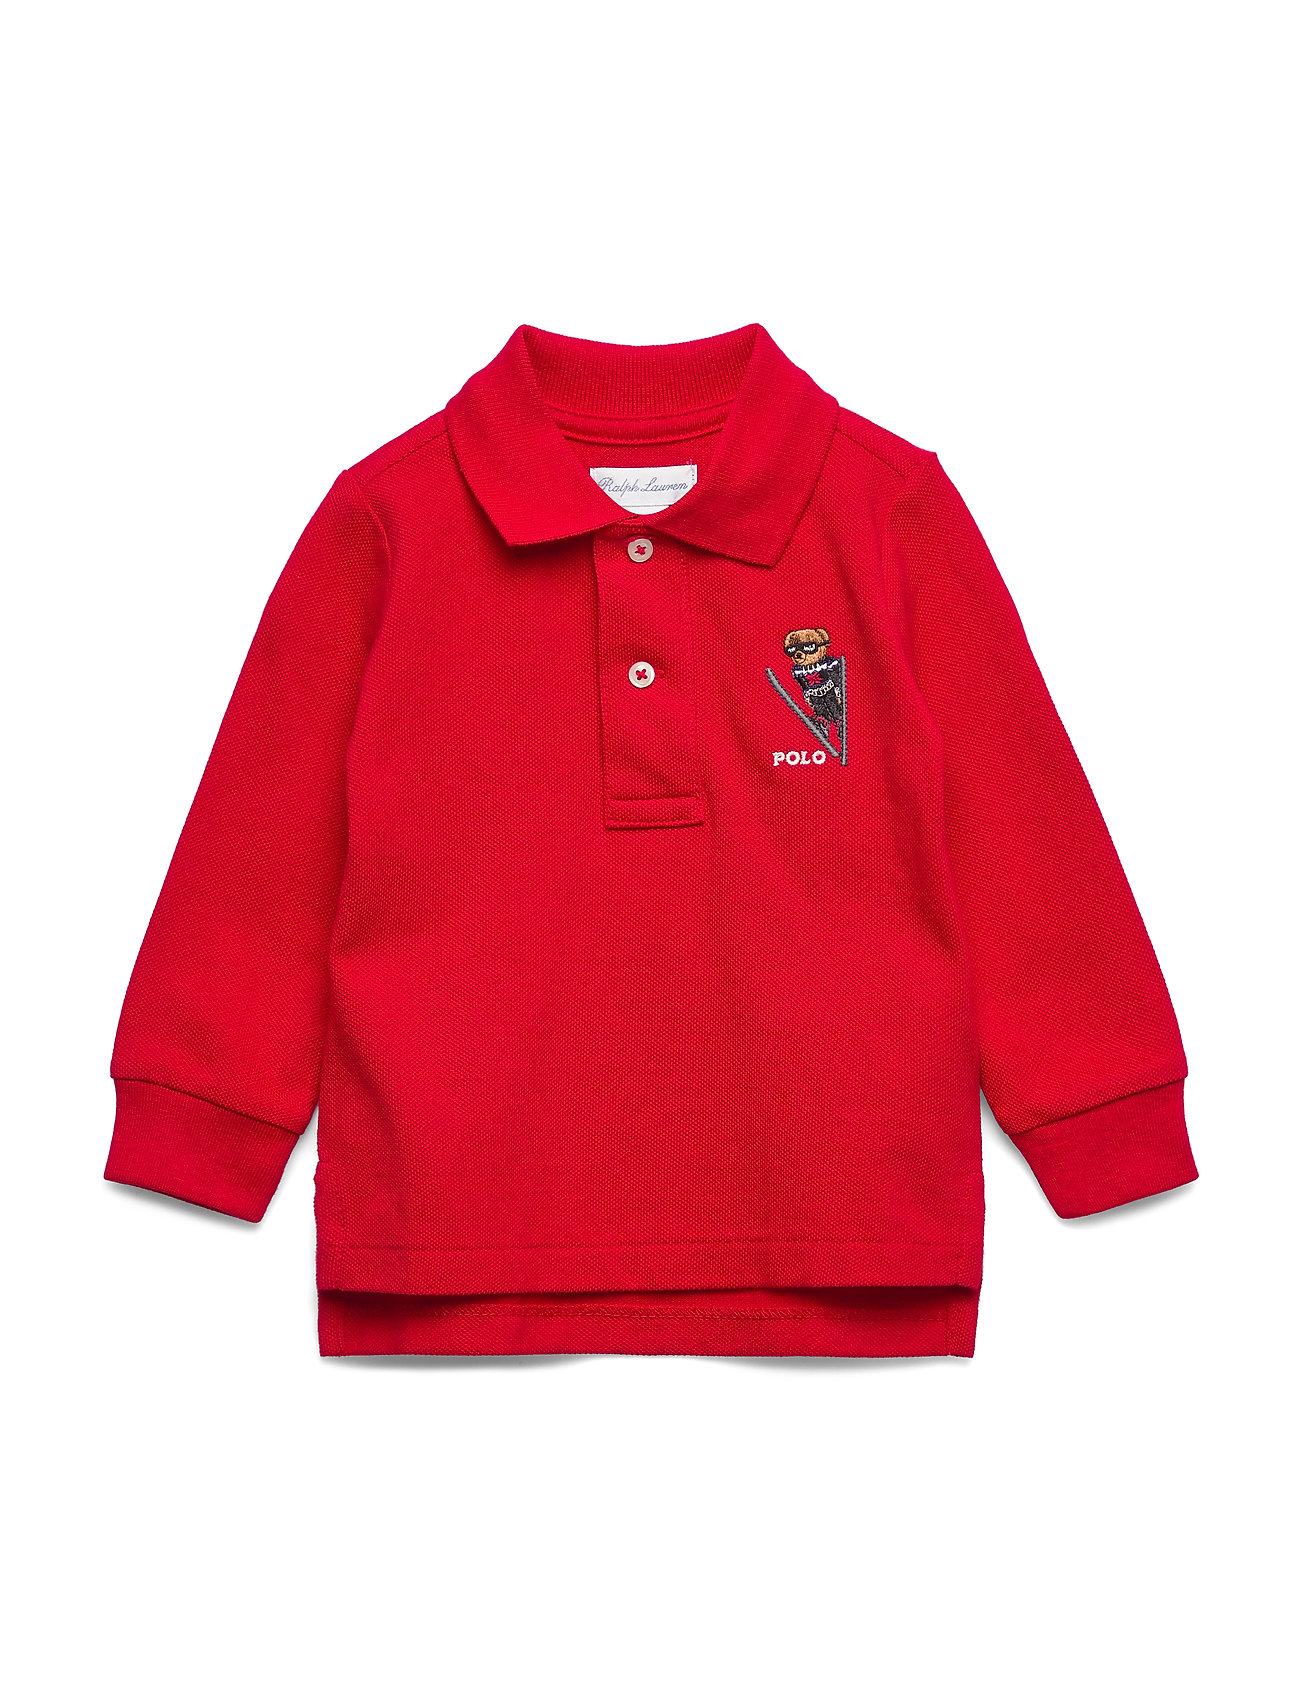 Ralph Lauren Baby LS KC-TOPS-KNIT - RL 2000 RED